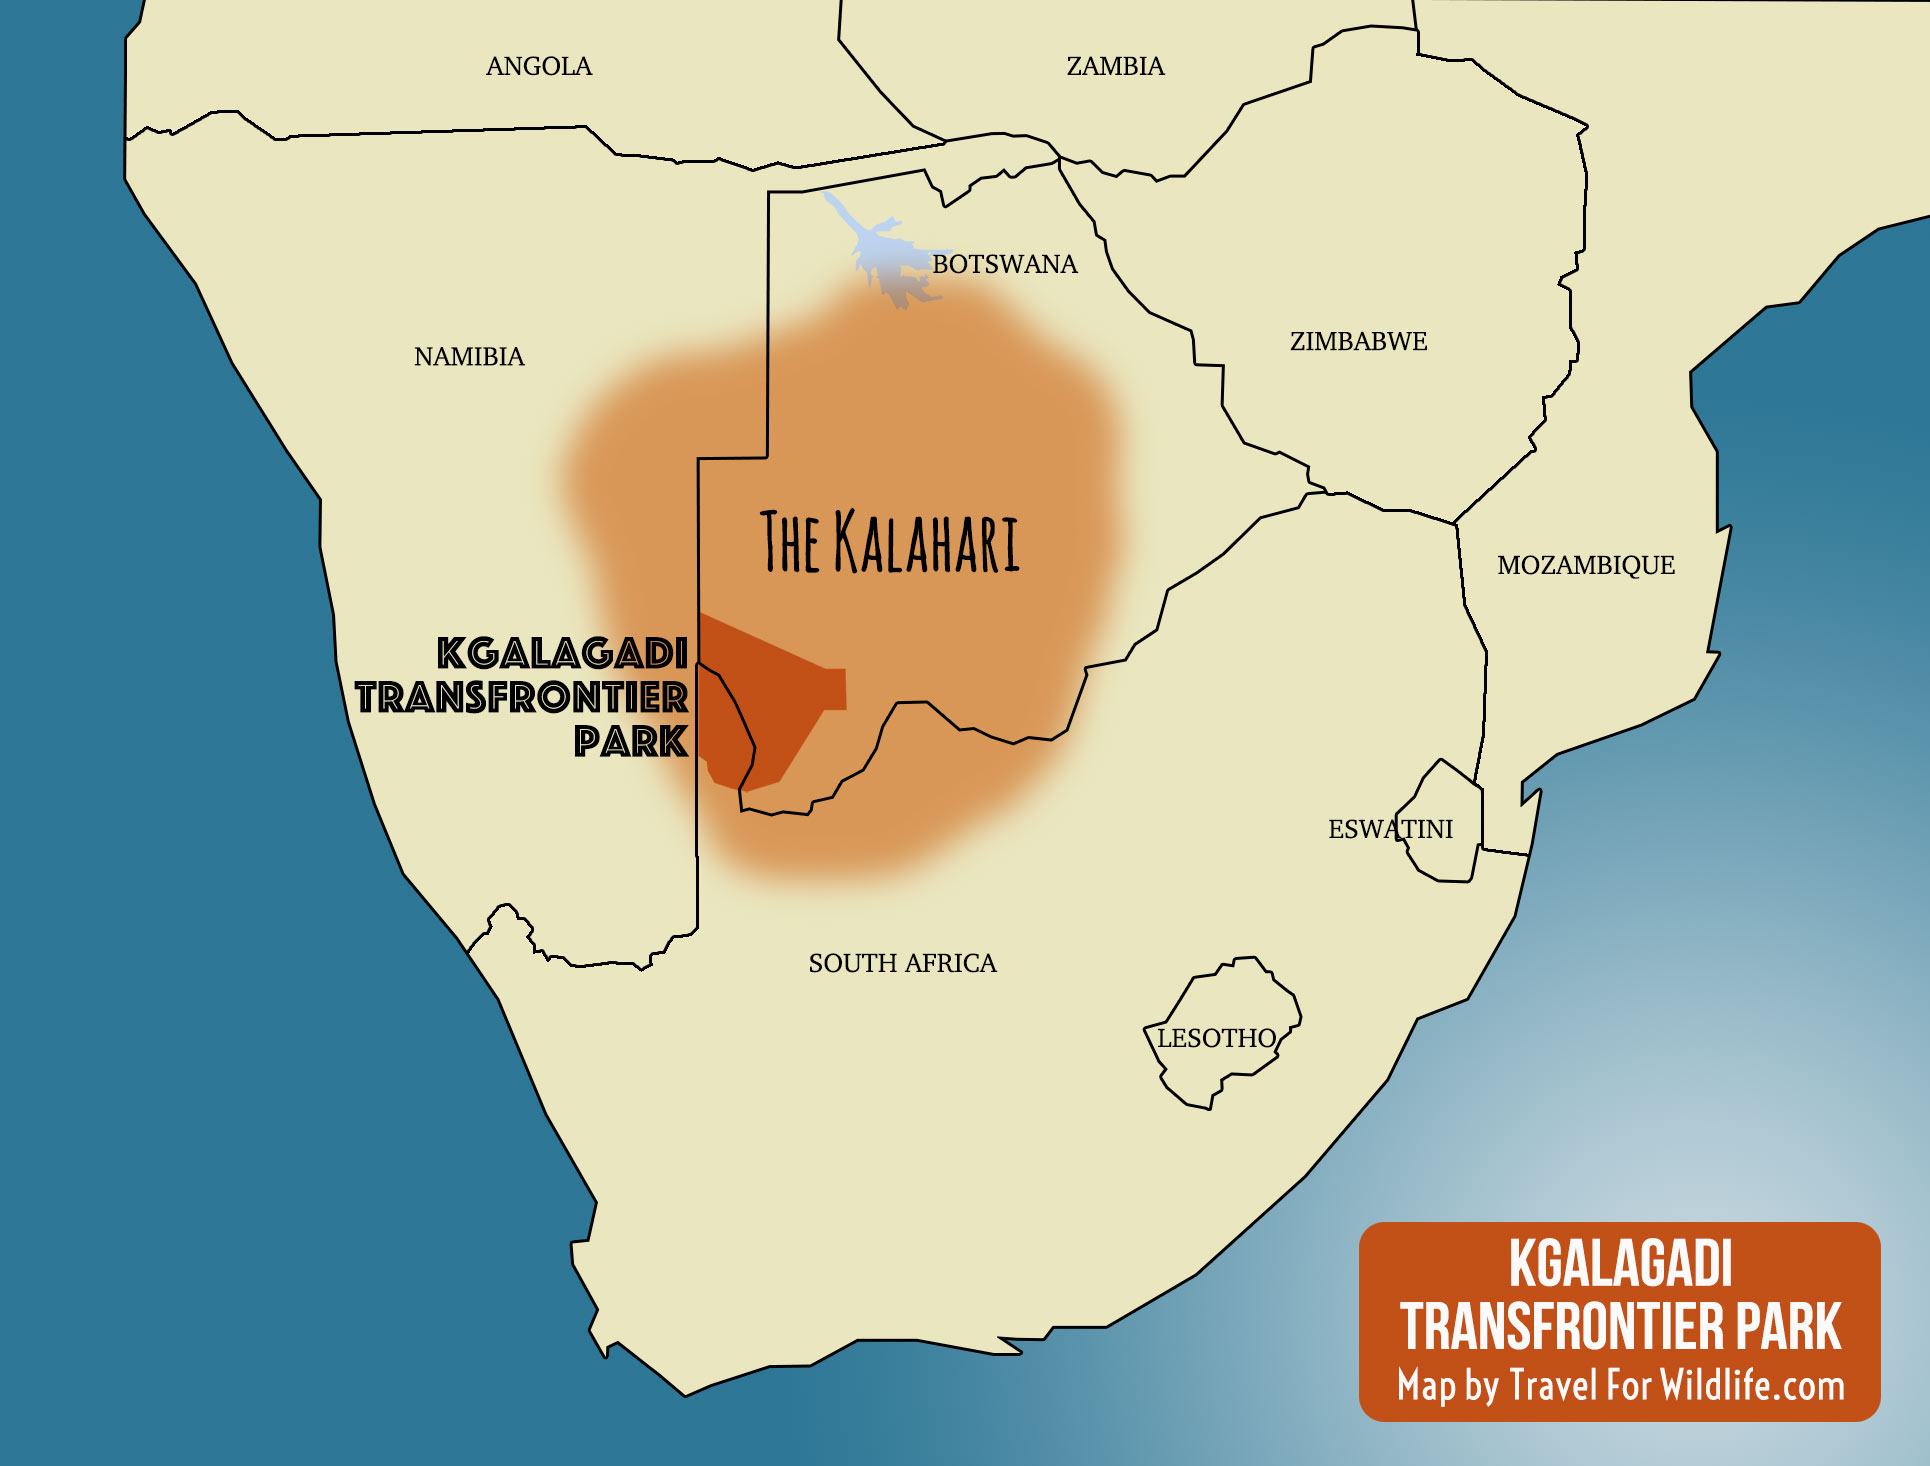 Map showing the location of the Kgalagadi